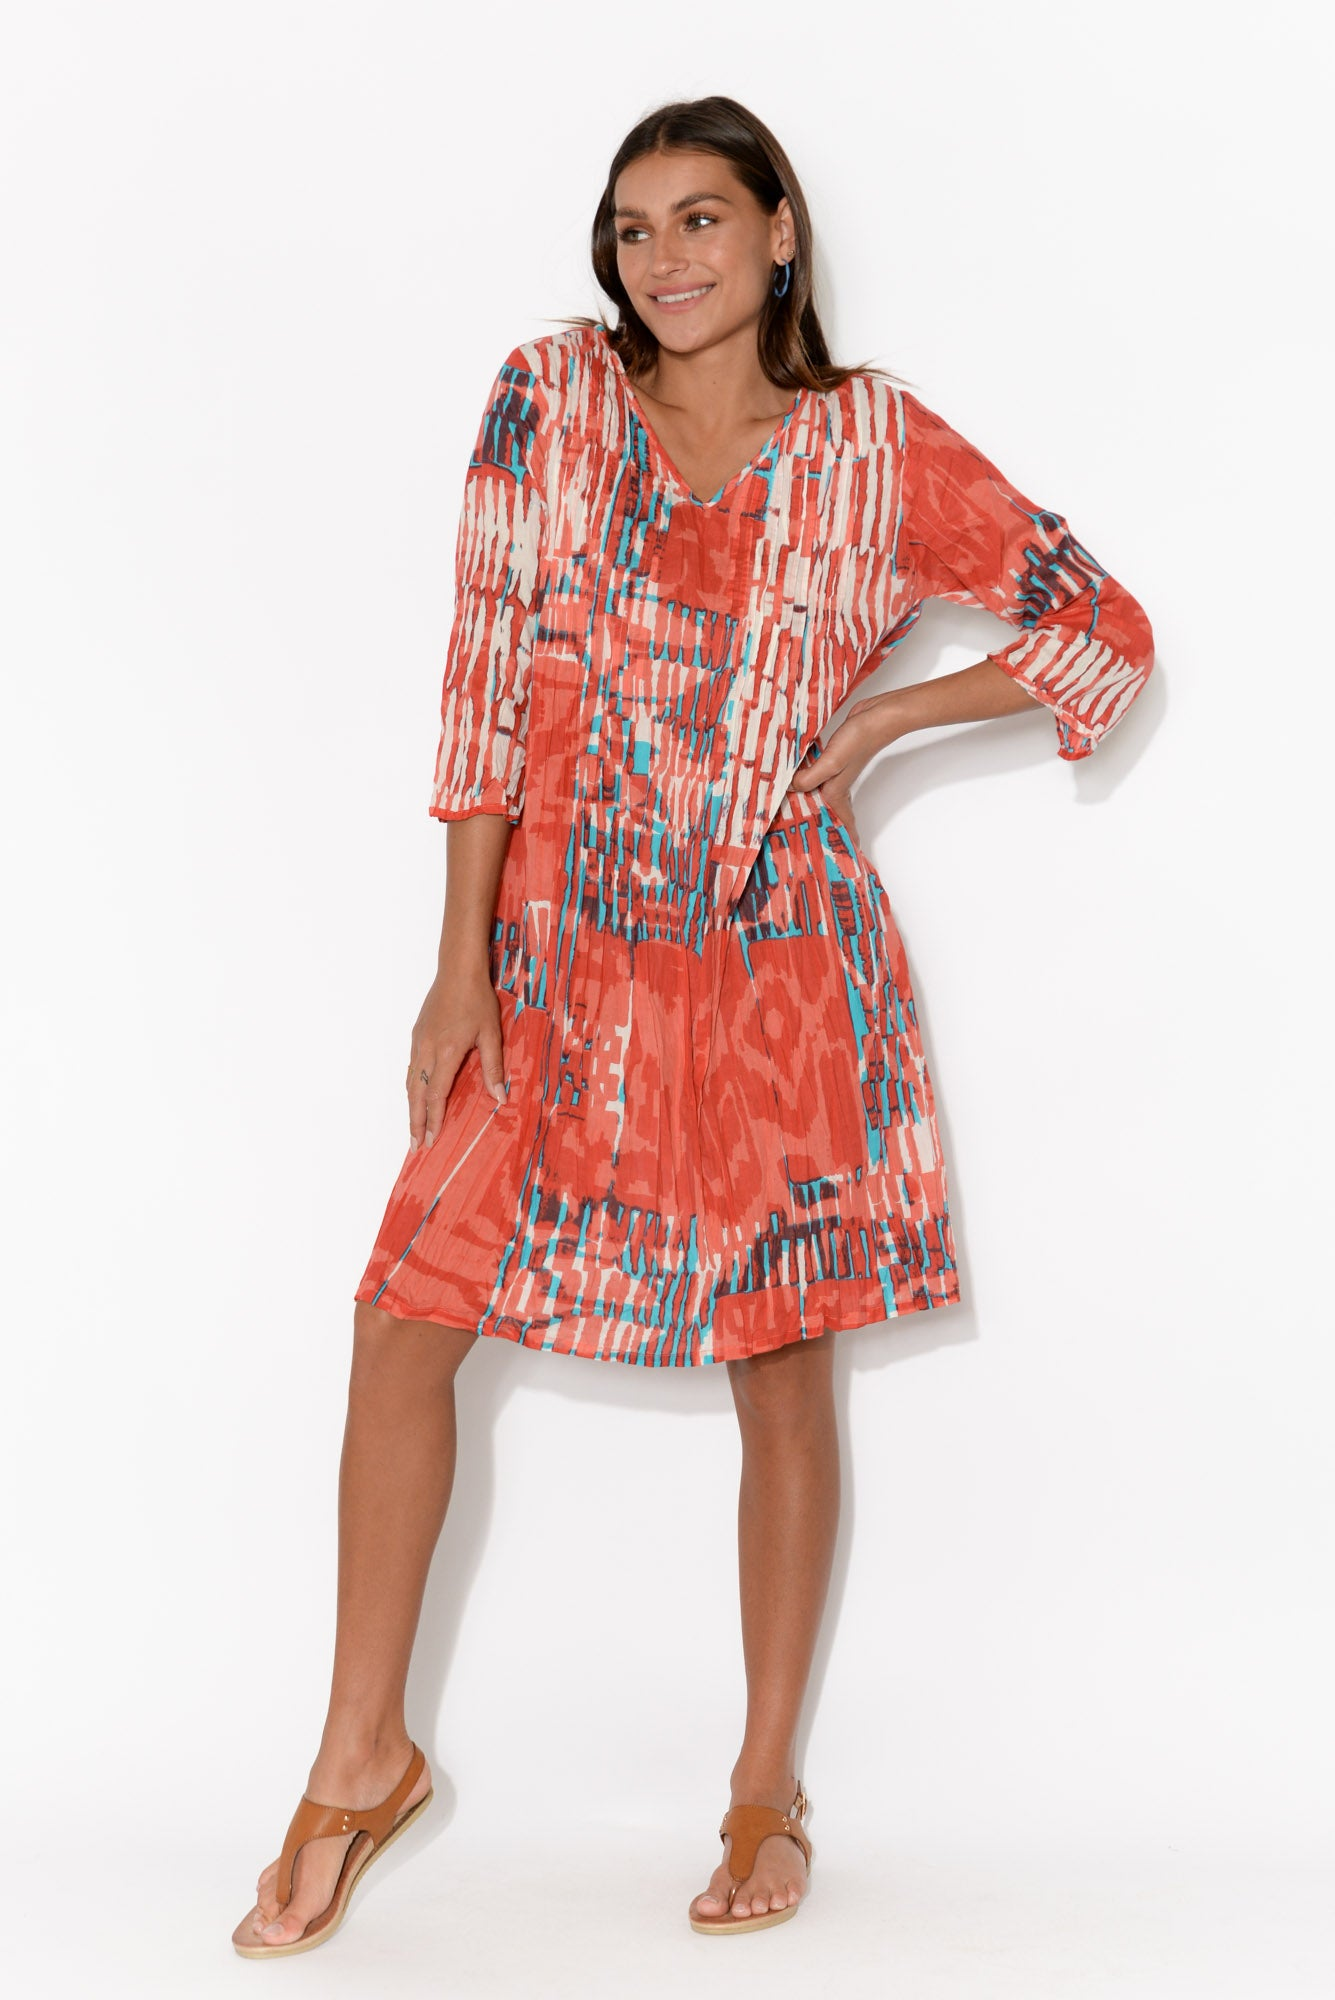 Tamara Red Crinkle Cotton Dress